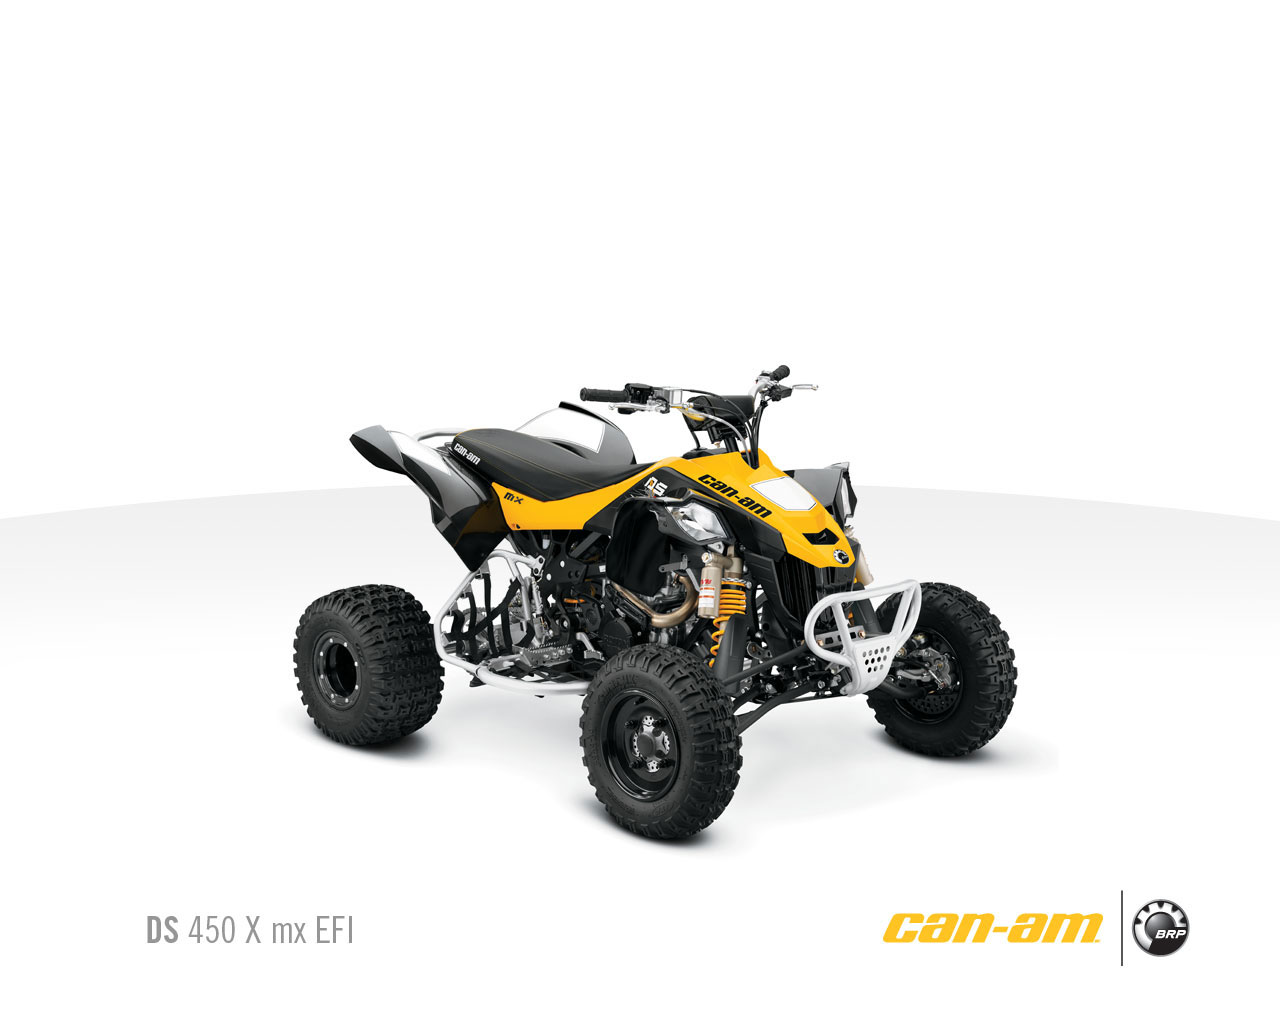 CAN AM BRPDS450XMX 3696_1 can am brp ds 450 x mx specs 2010, 2011 autoevolution 1991 Ski-Doo Mach 1 Parts at beritabola.co